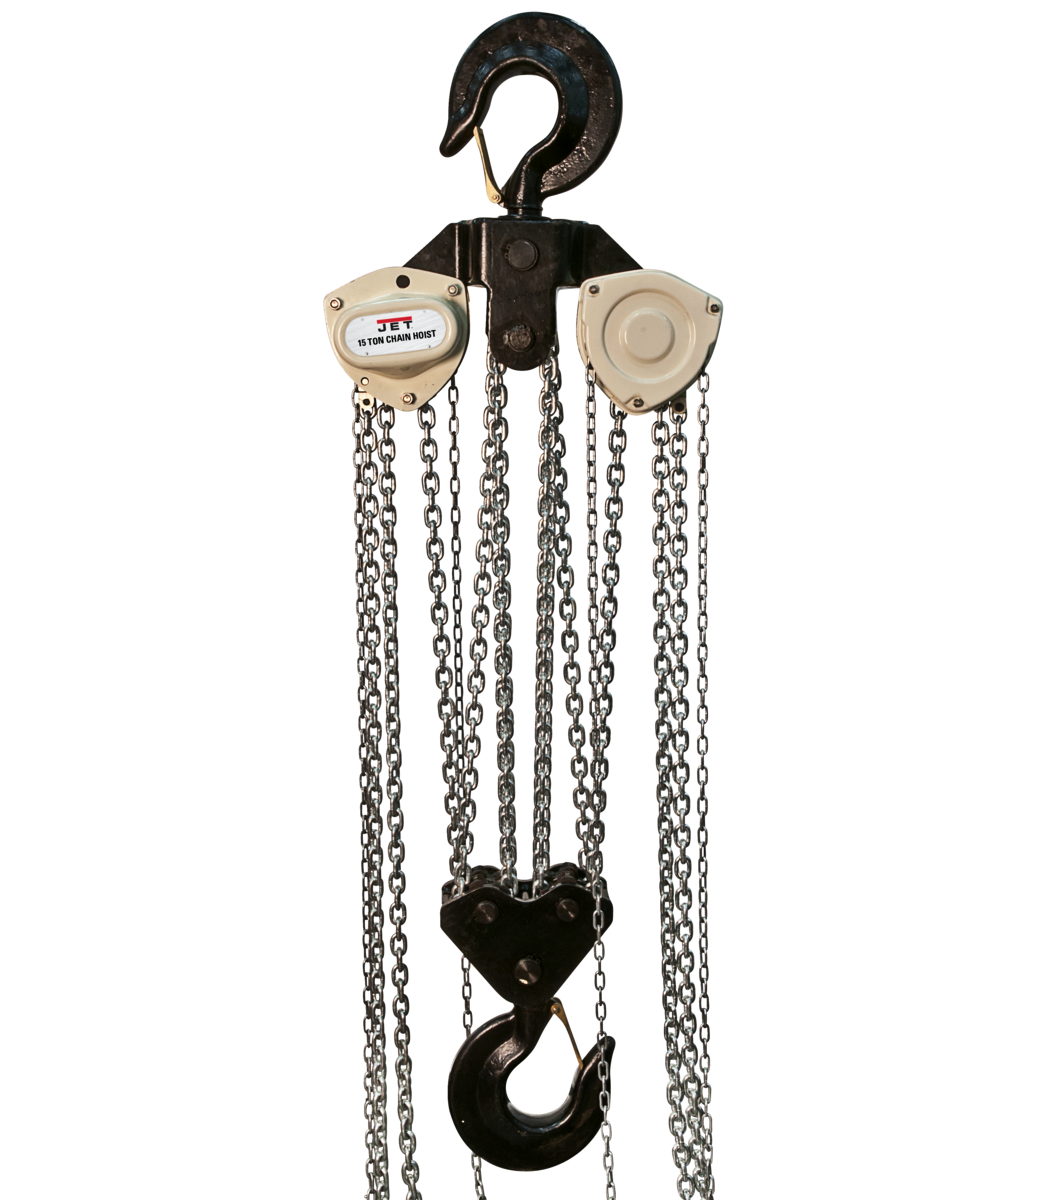 L-100 1500WO-20, 15-Ton Hand Chain Hoist With 20' Lift & Overload Protection